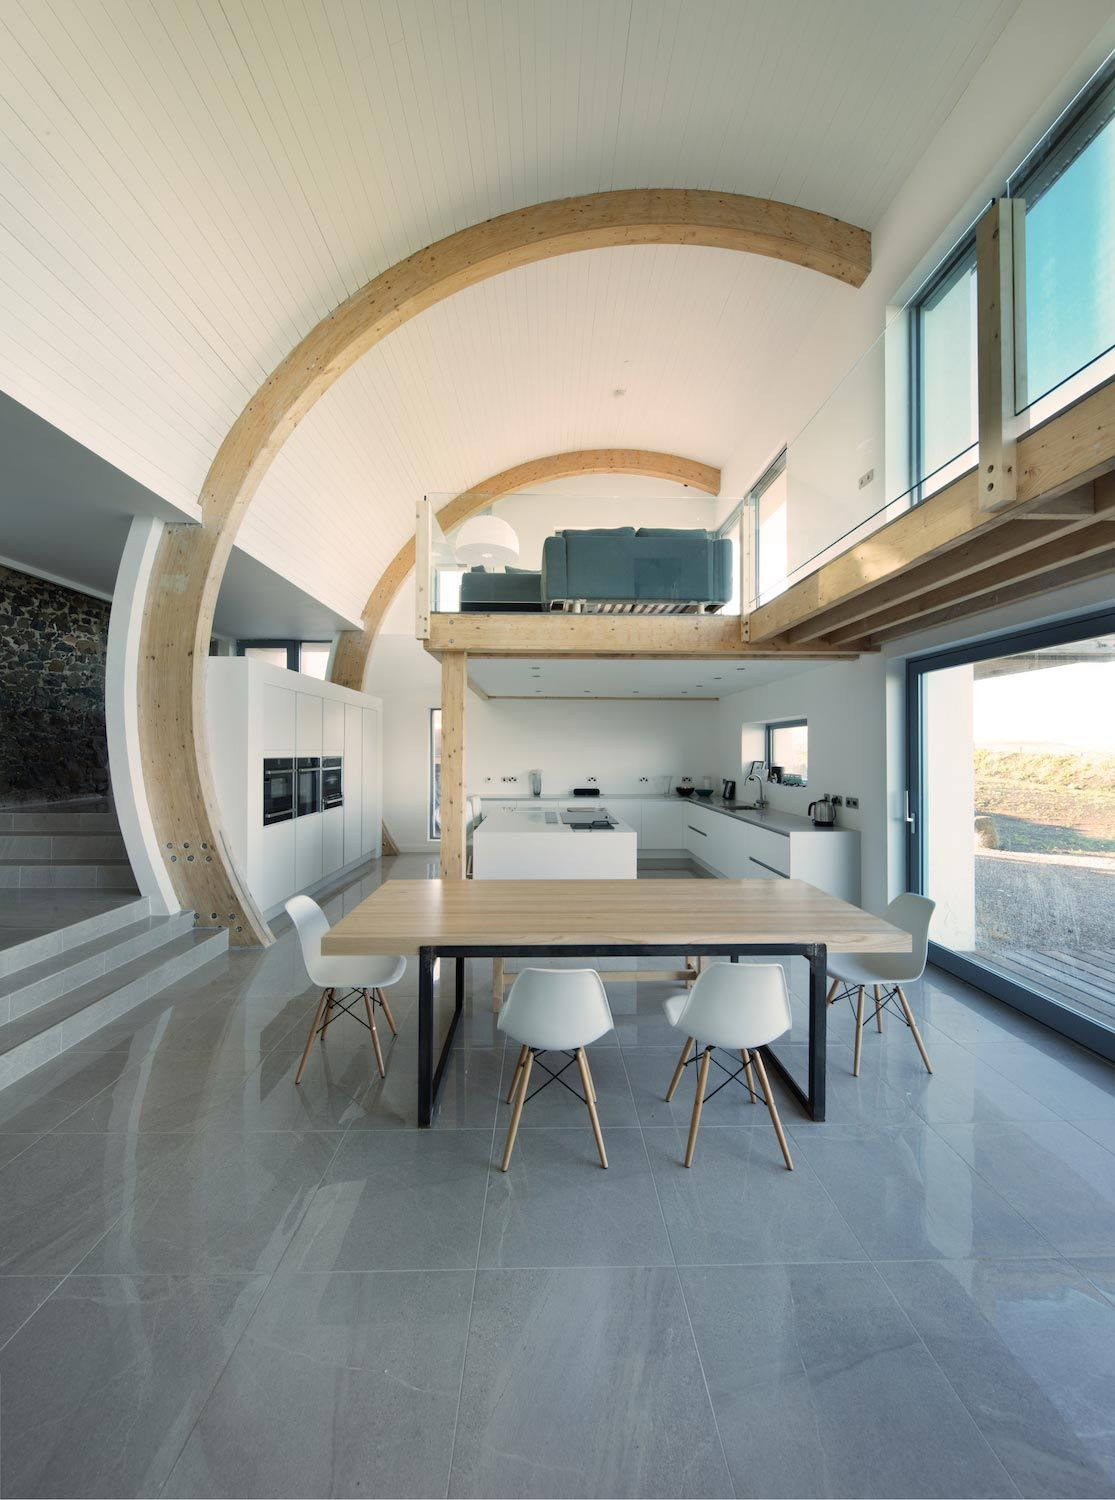 2020 Architects redesigned an old blacksmiths cottage into contemporary…